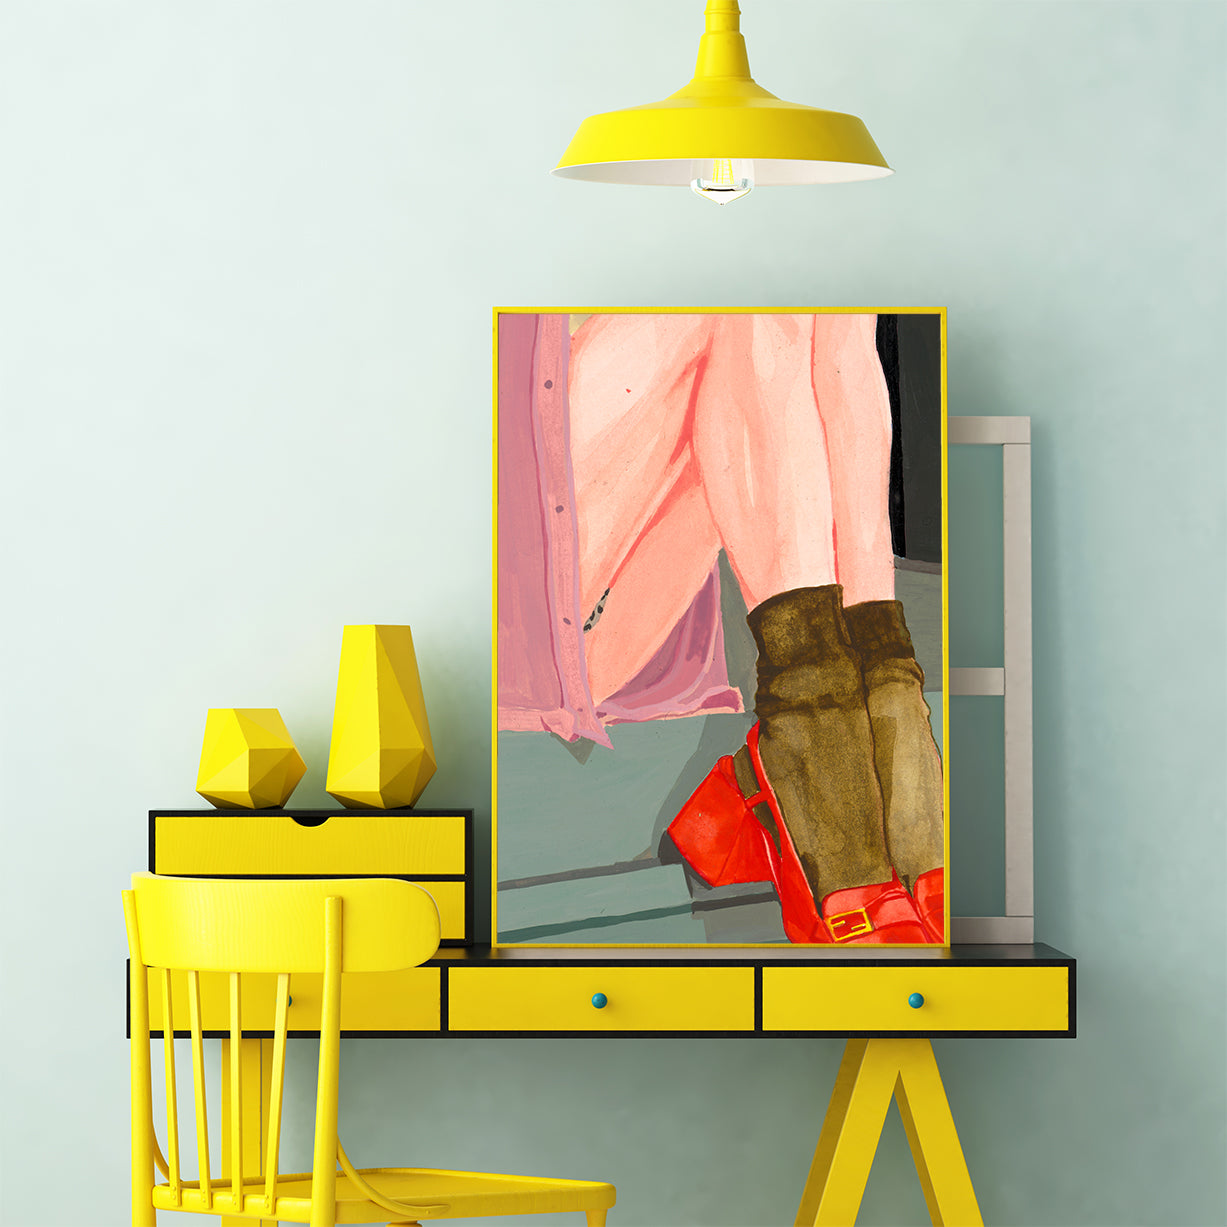 Colourful poster print of an originally painted art, with a woman's legs, office wall view